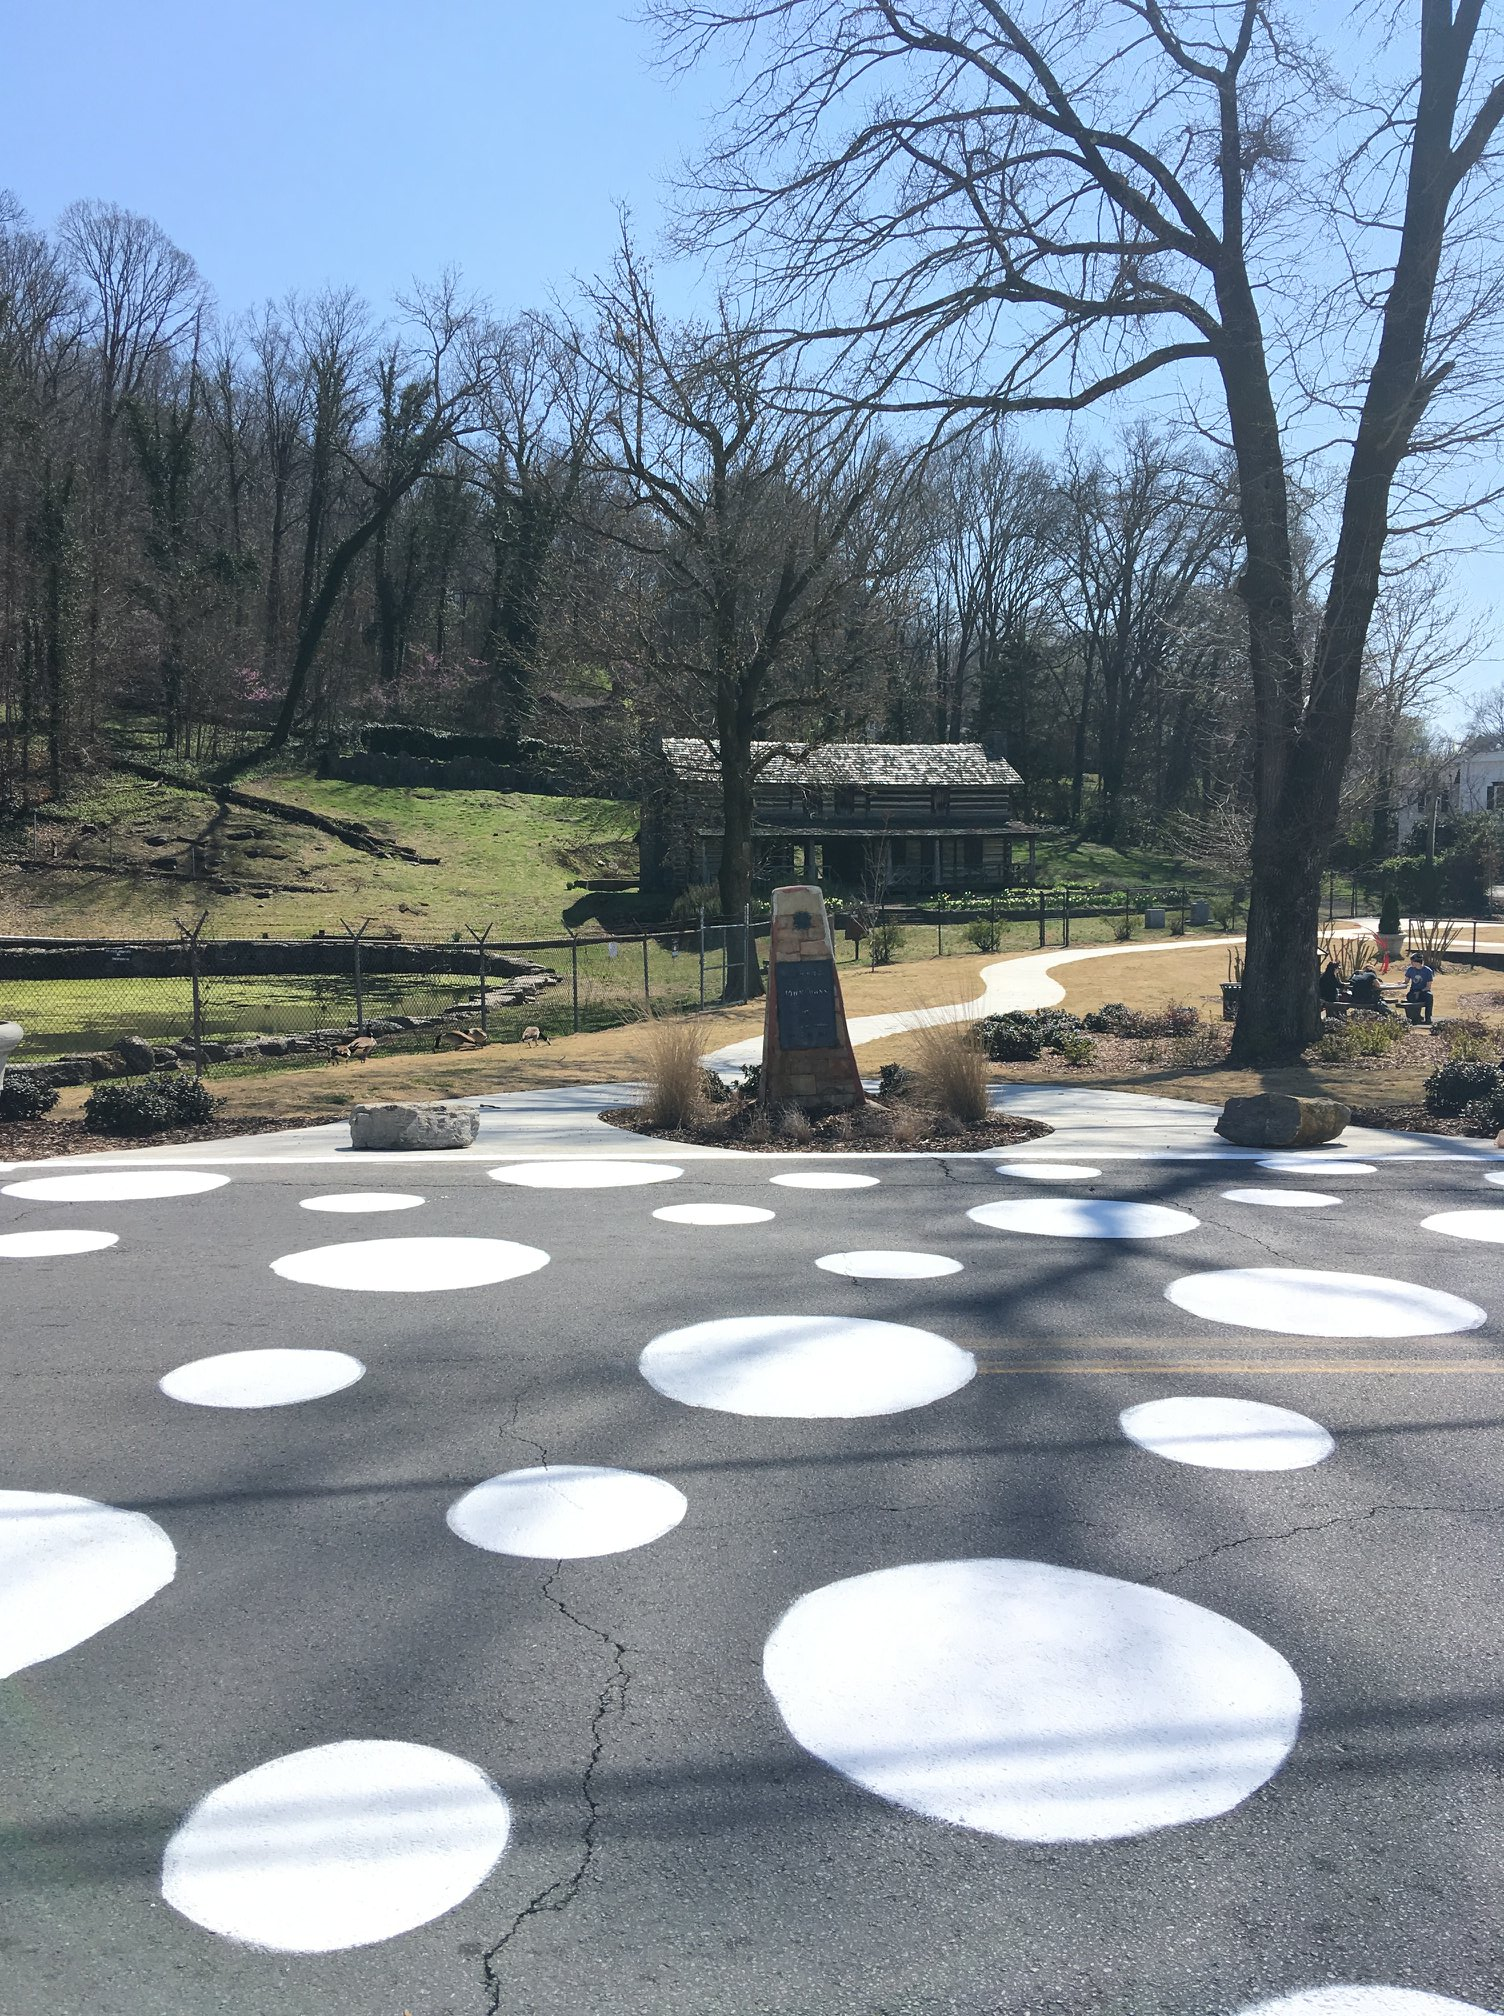 Artistic crosswalk painted by volunteers at the John Ross park in Rossville, Georgia